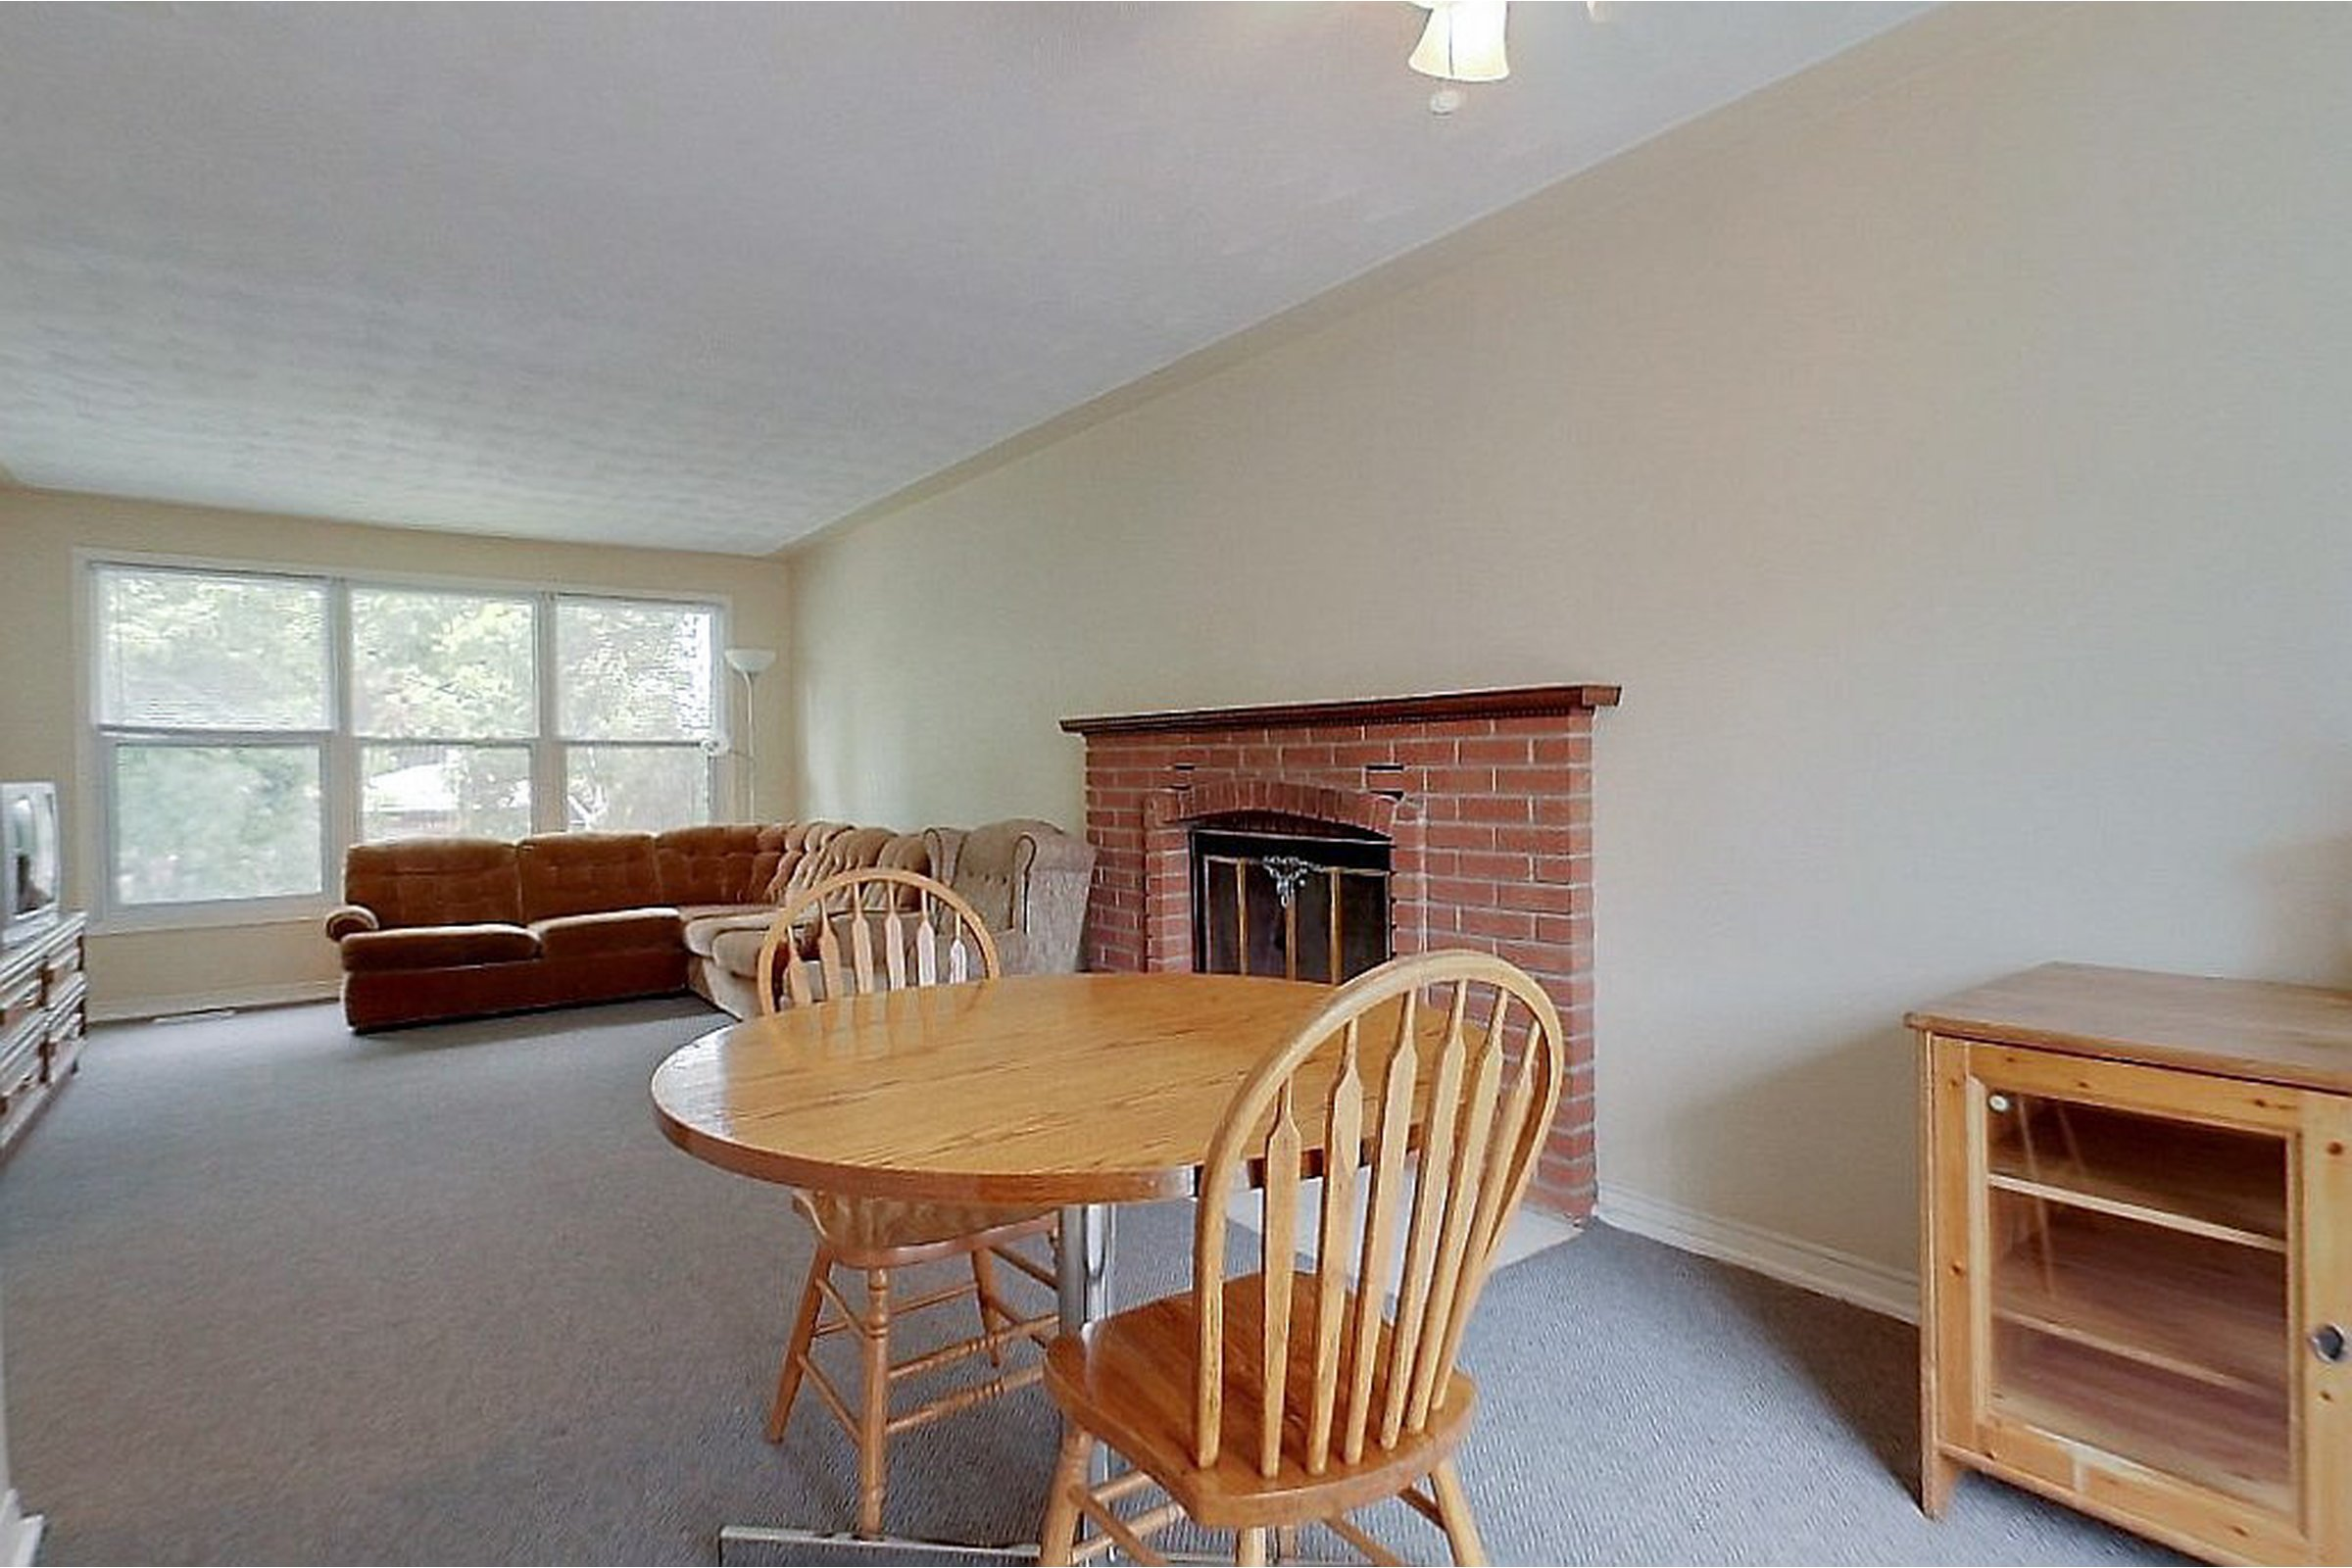 69 Blythwood - January 2016 or later start date - STUDENTS! Short or long term lease. Furniture + Utilities included. Cheap and